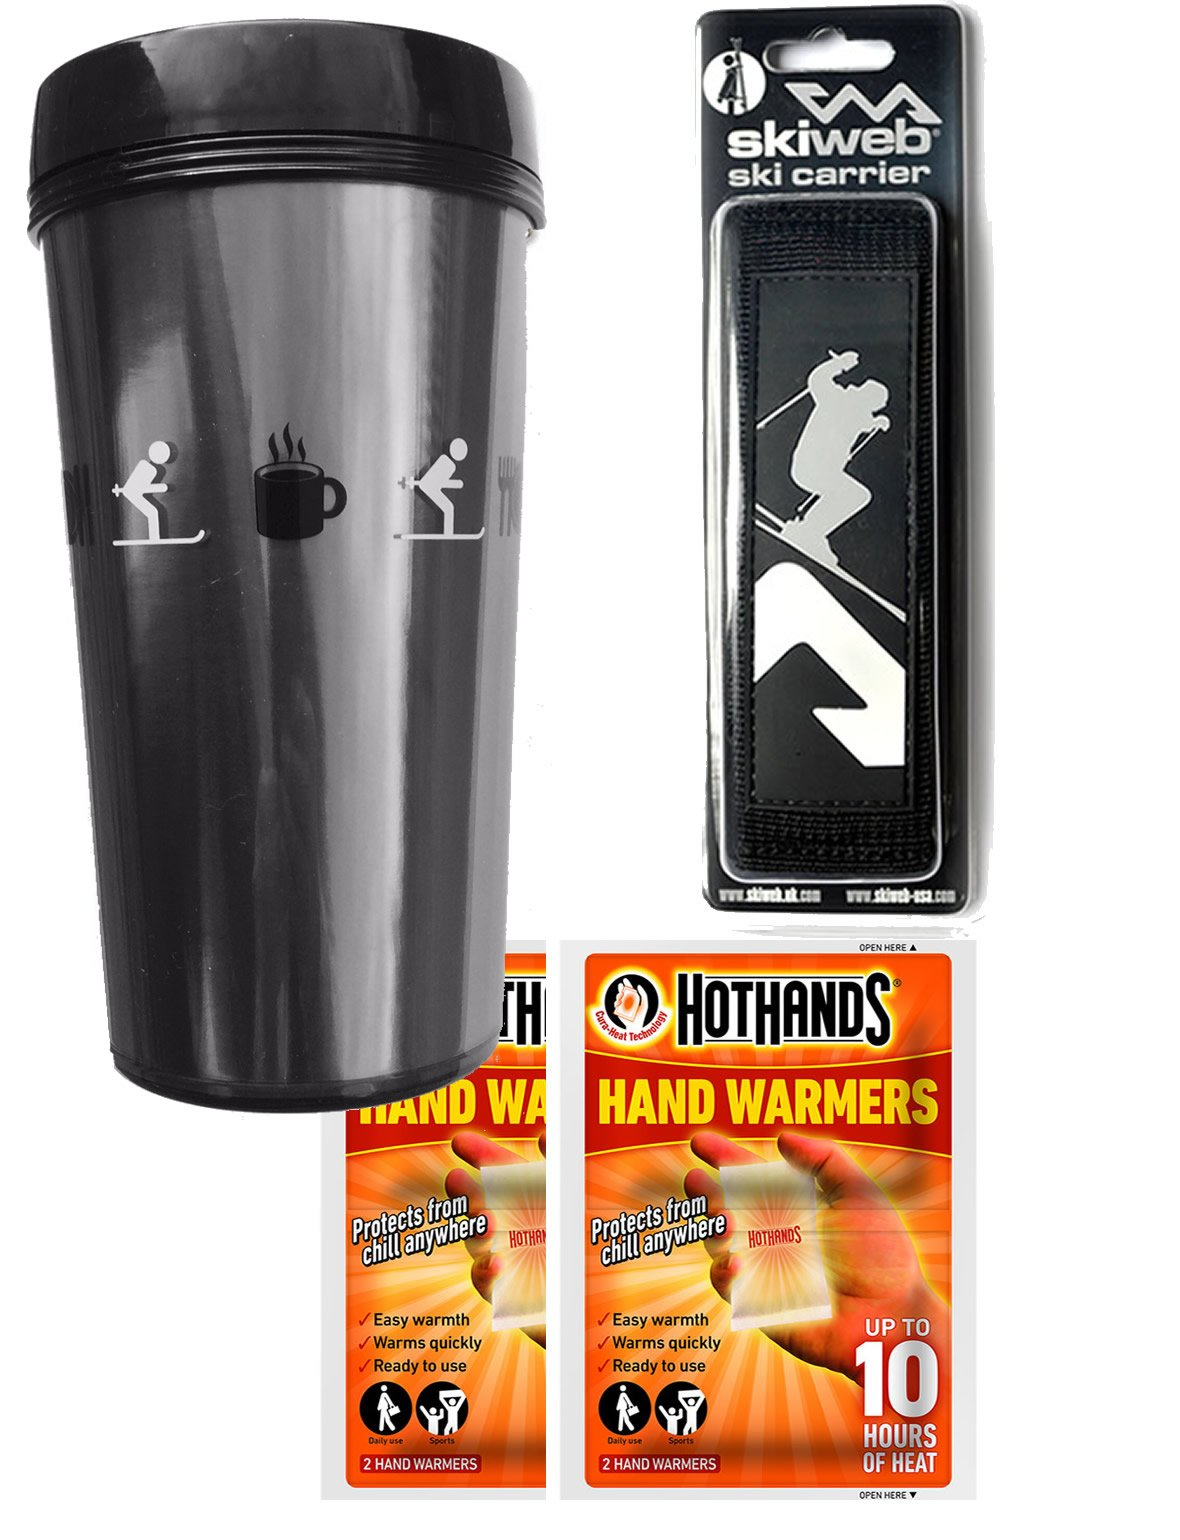 Ski Gift Pack - Travel Mug With Ski Carrier & Hothands Warmers by Skiweb